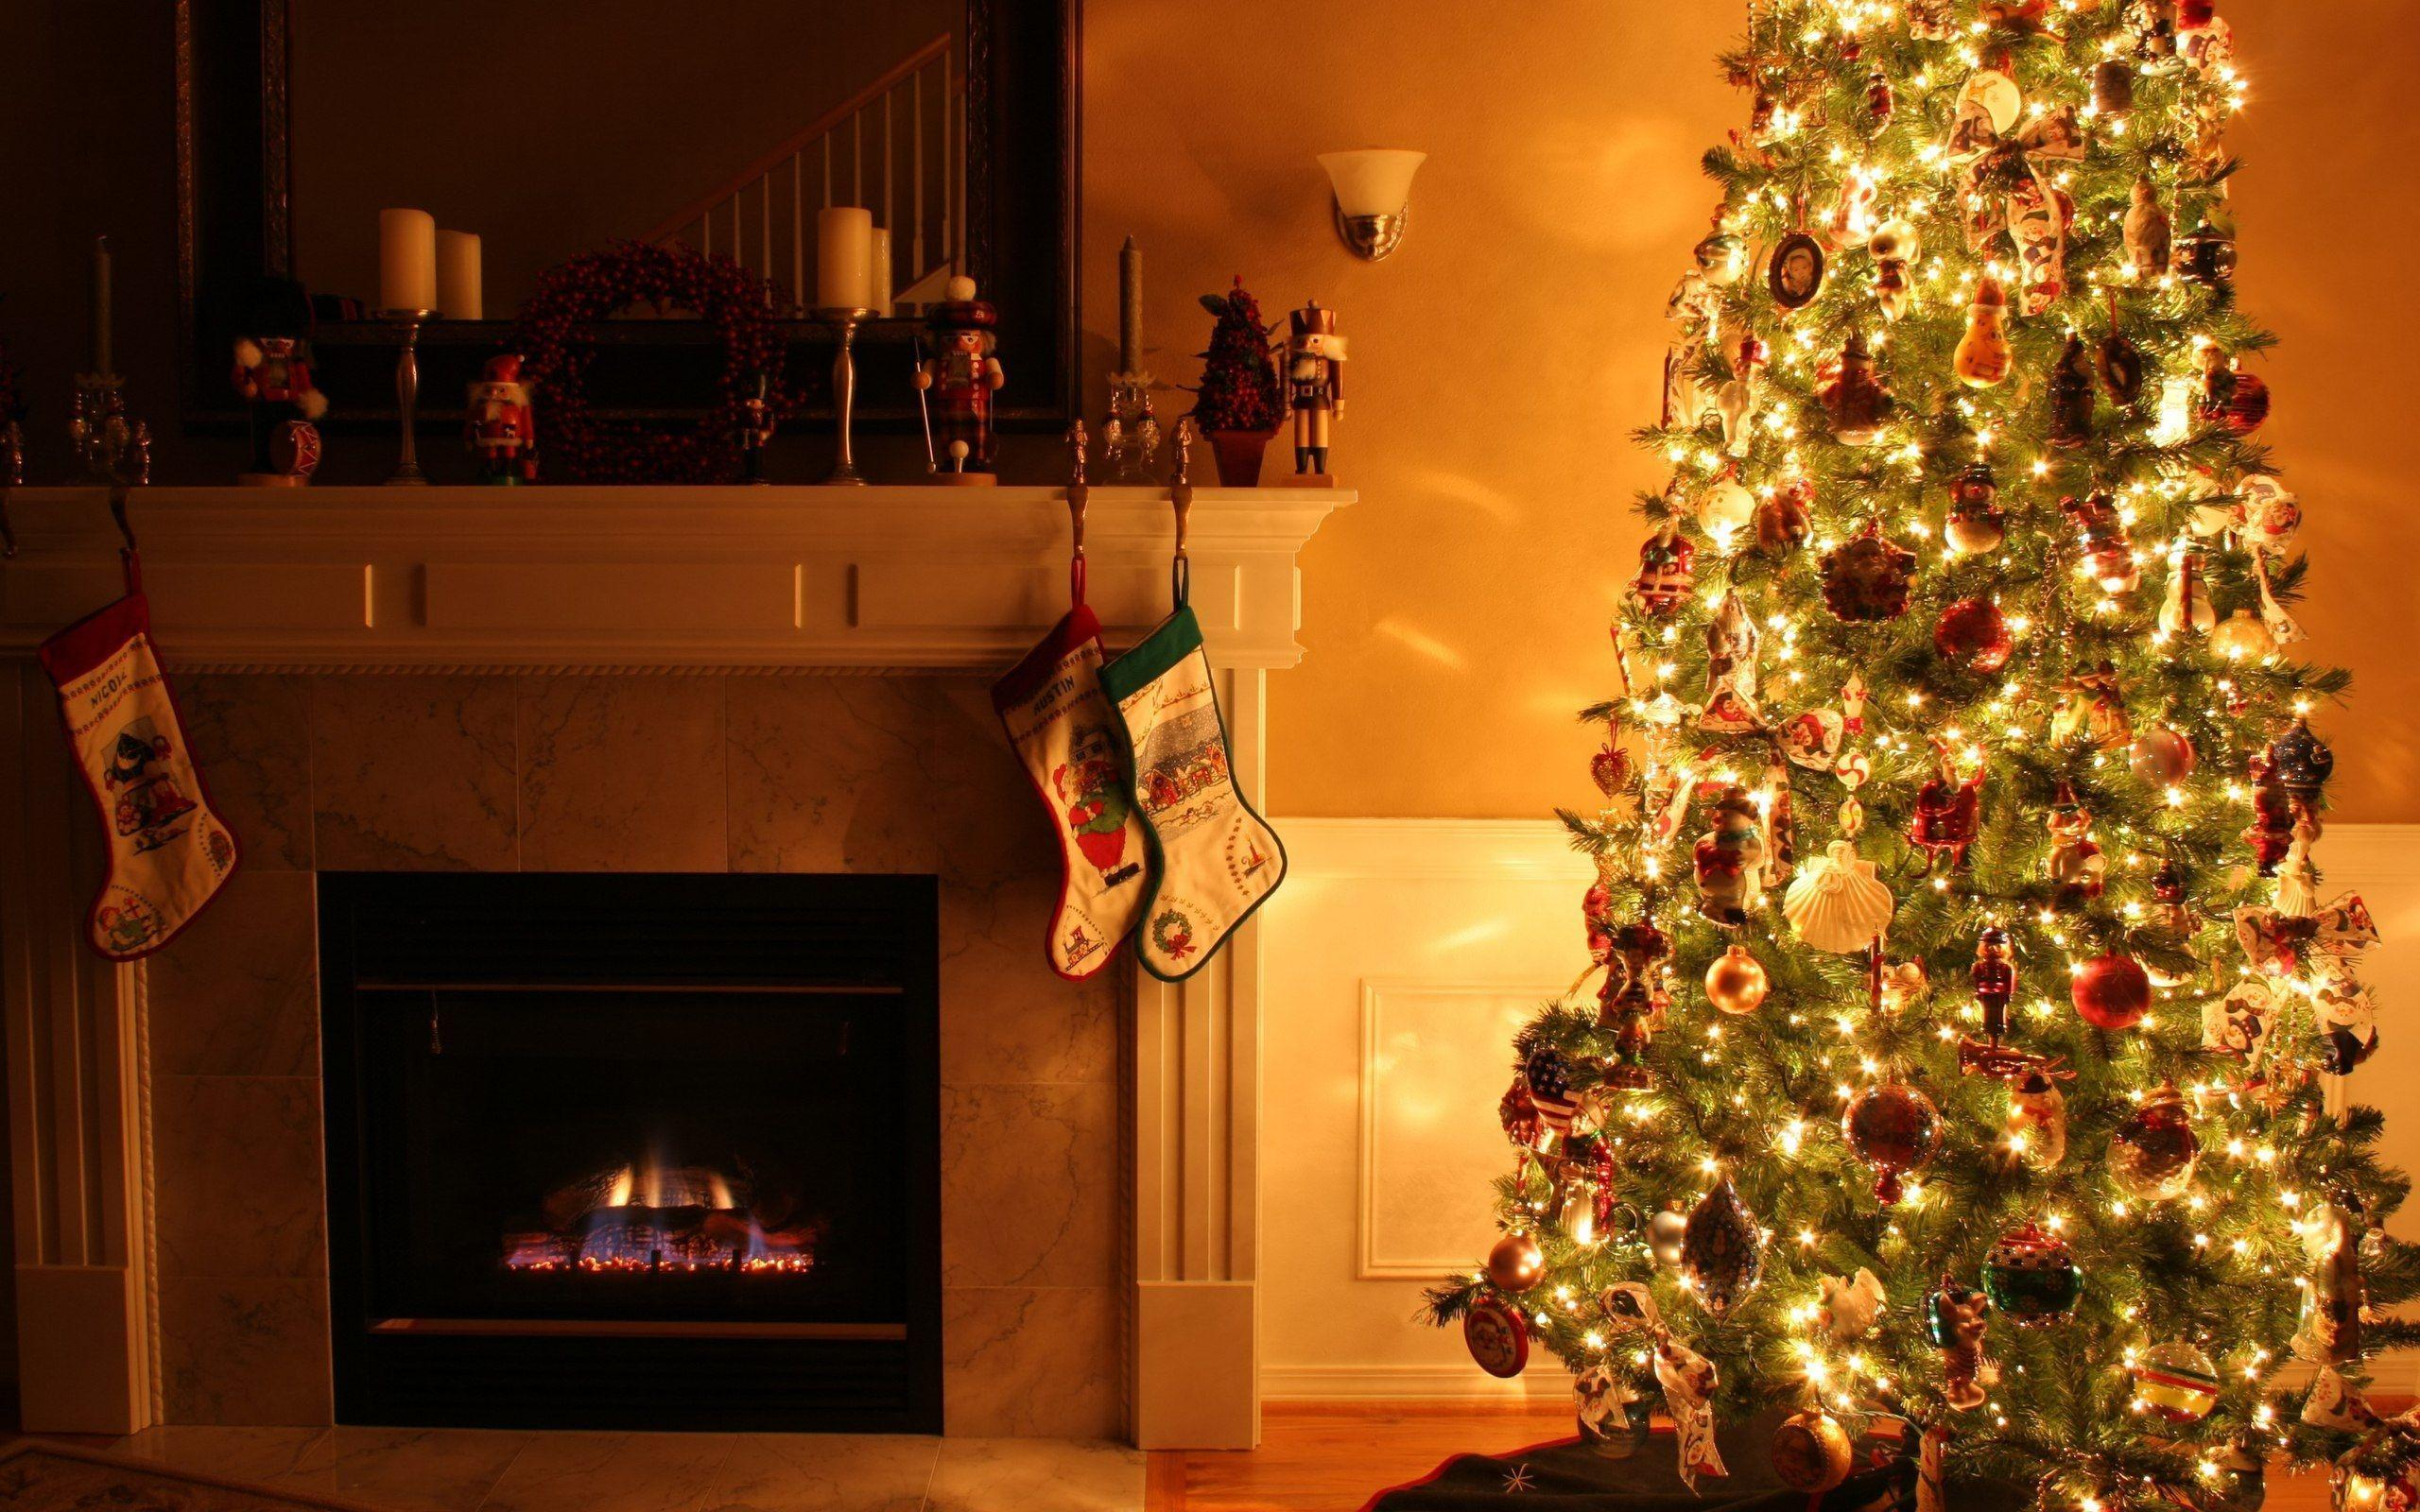 Burning Fireplace Decorated Christmas Tree HD Wallpapers